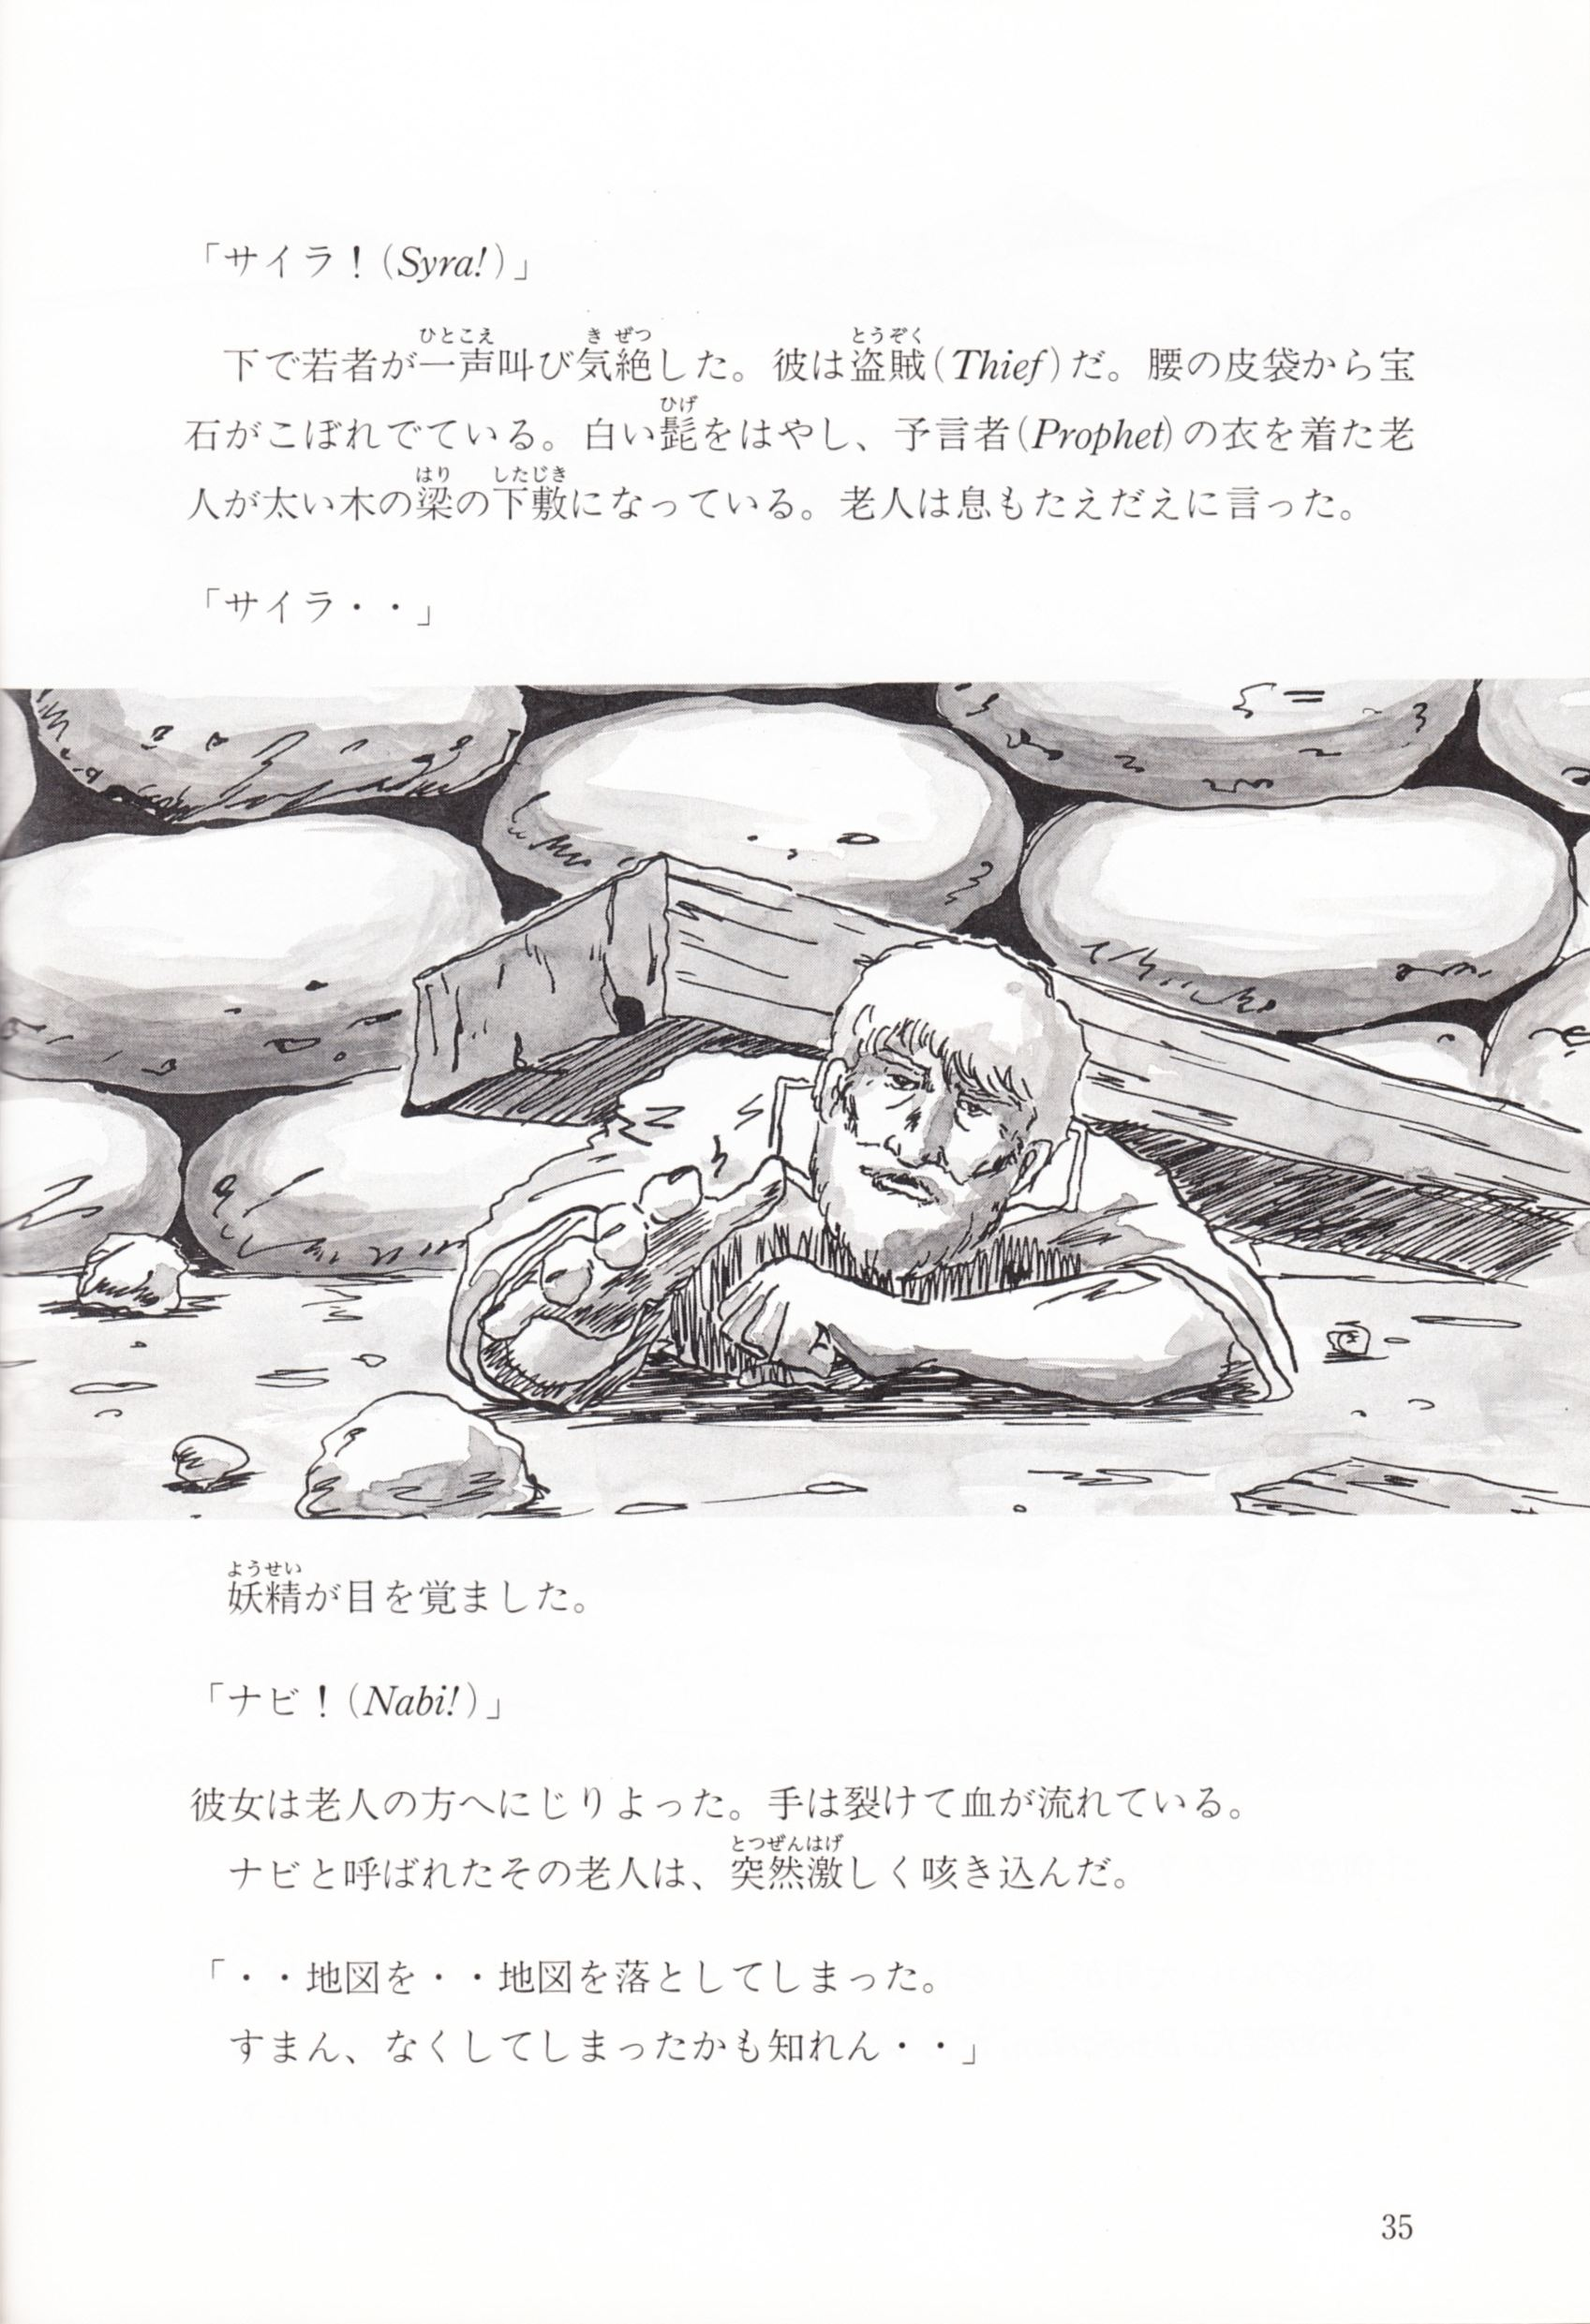 Game - Dungeon Master - JP - FM Towns - Story Guide - Page 037 - Scan